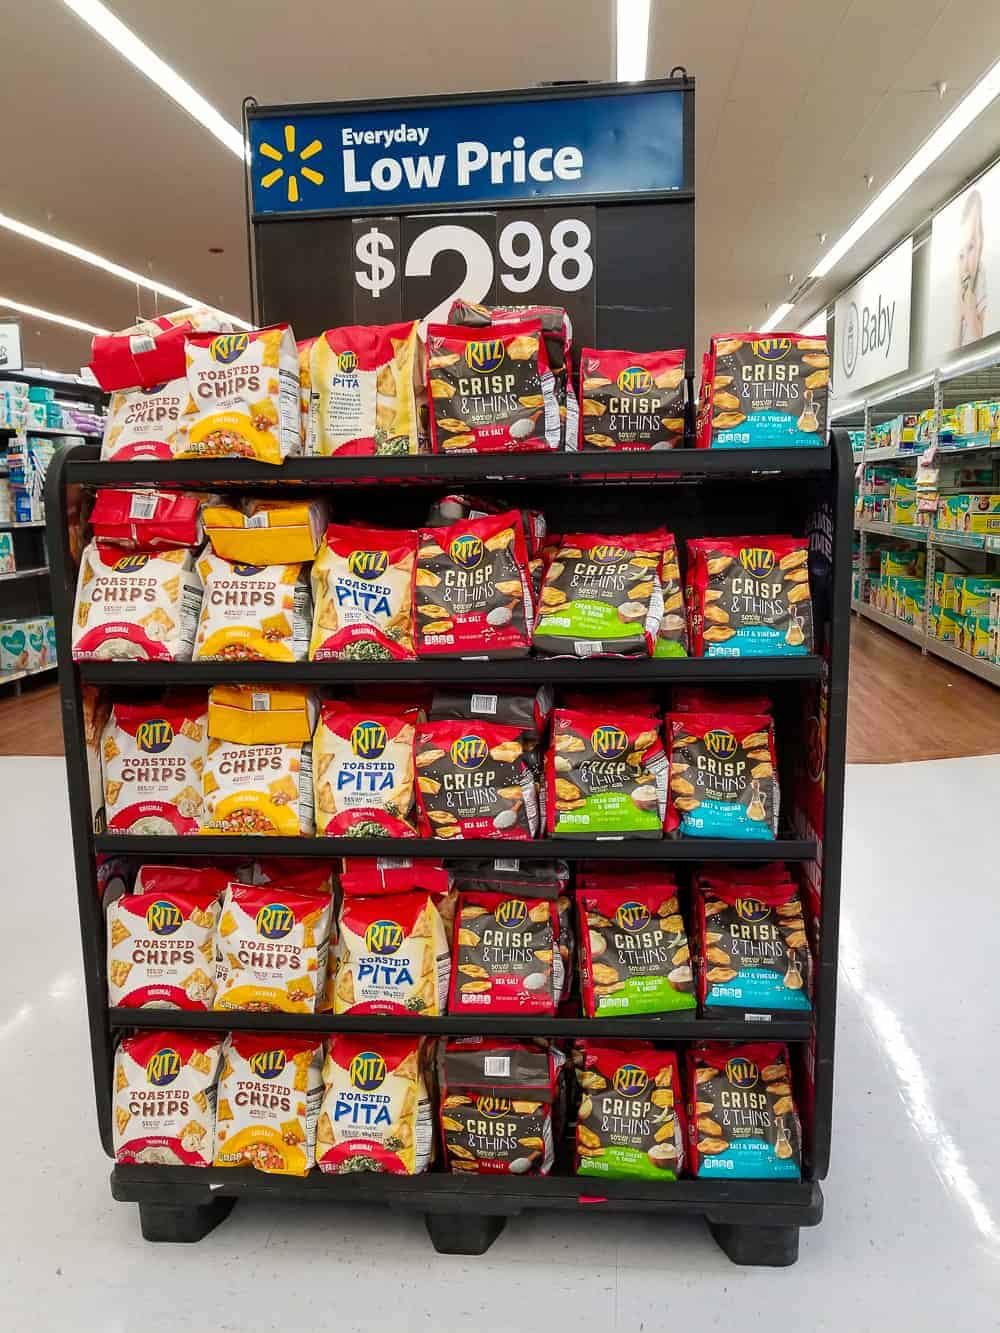 RITZ Crisp & Thins at Walmart on Game Day Rack